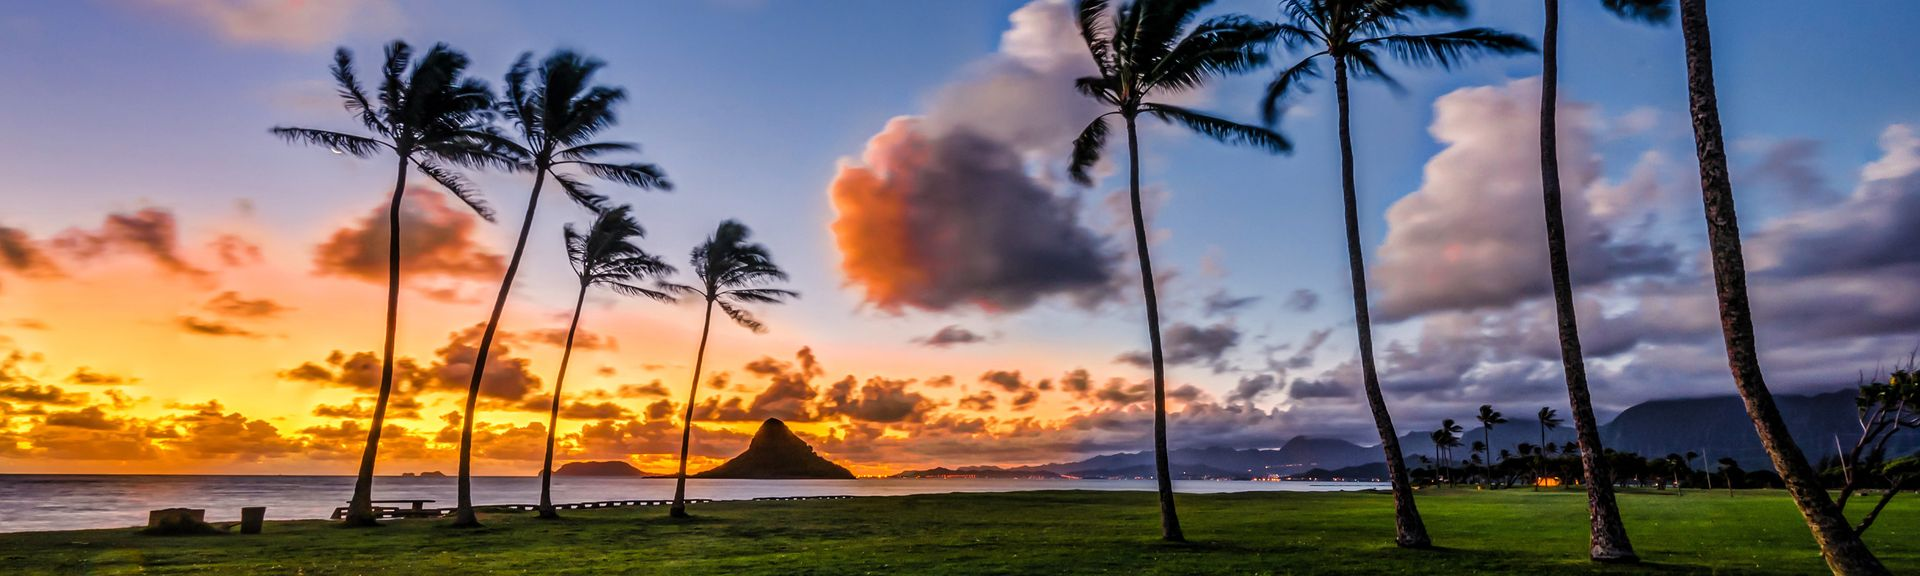 Kaneohe, Hawaii, United States of America